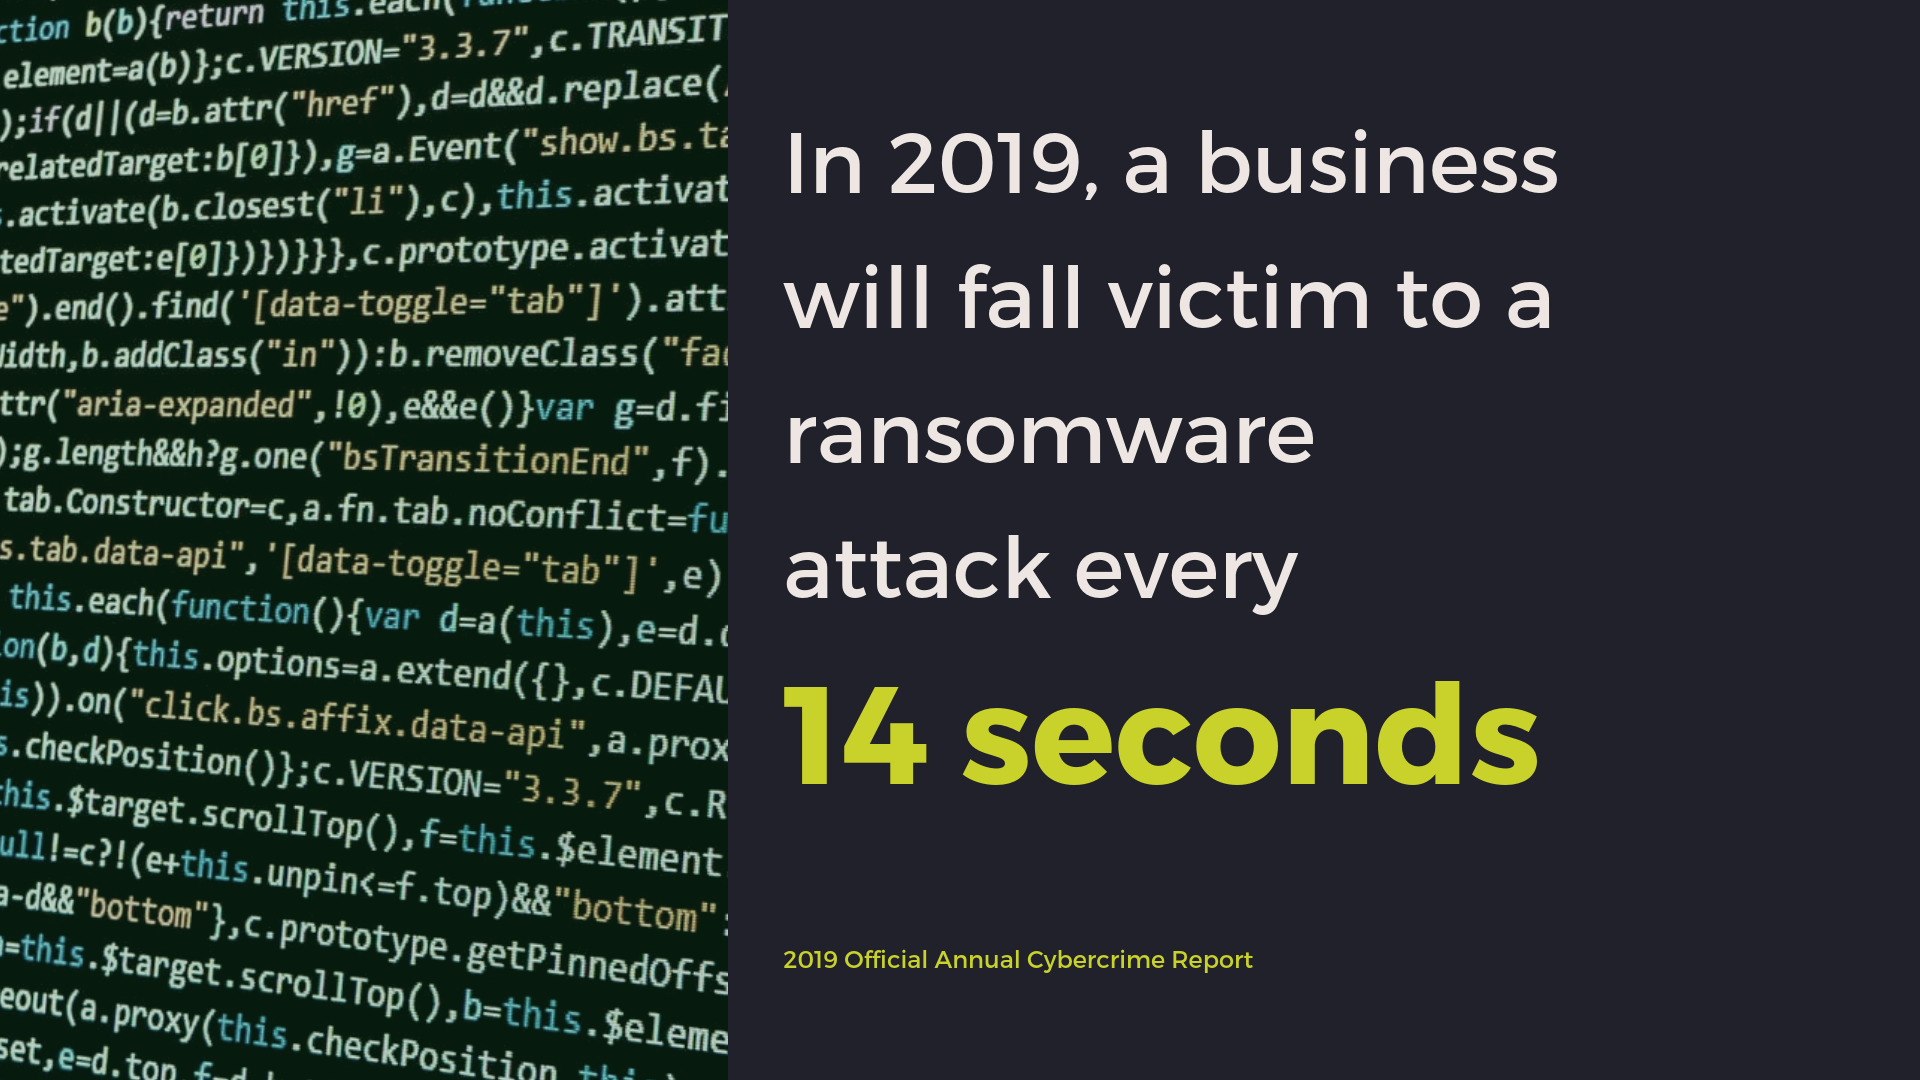 In 2019, businesses will fall victim to a ransomware attack every 14 seconds